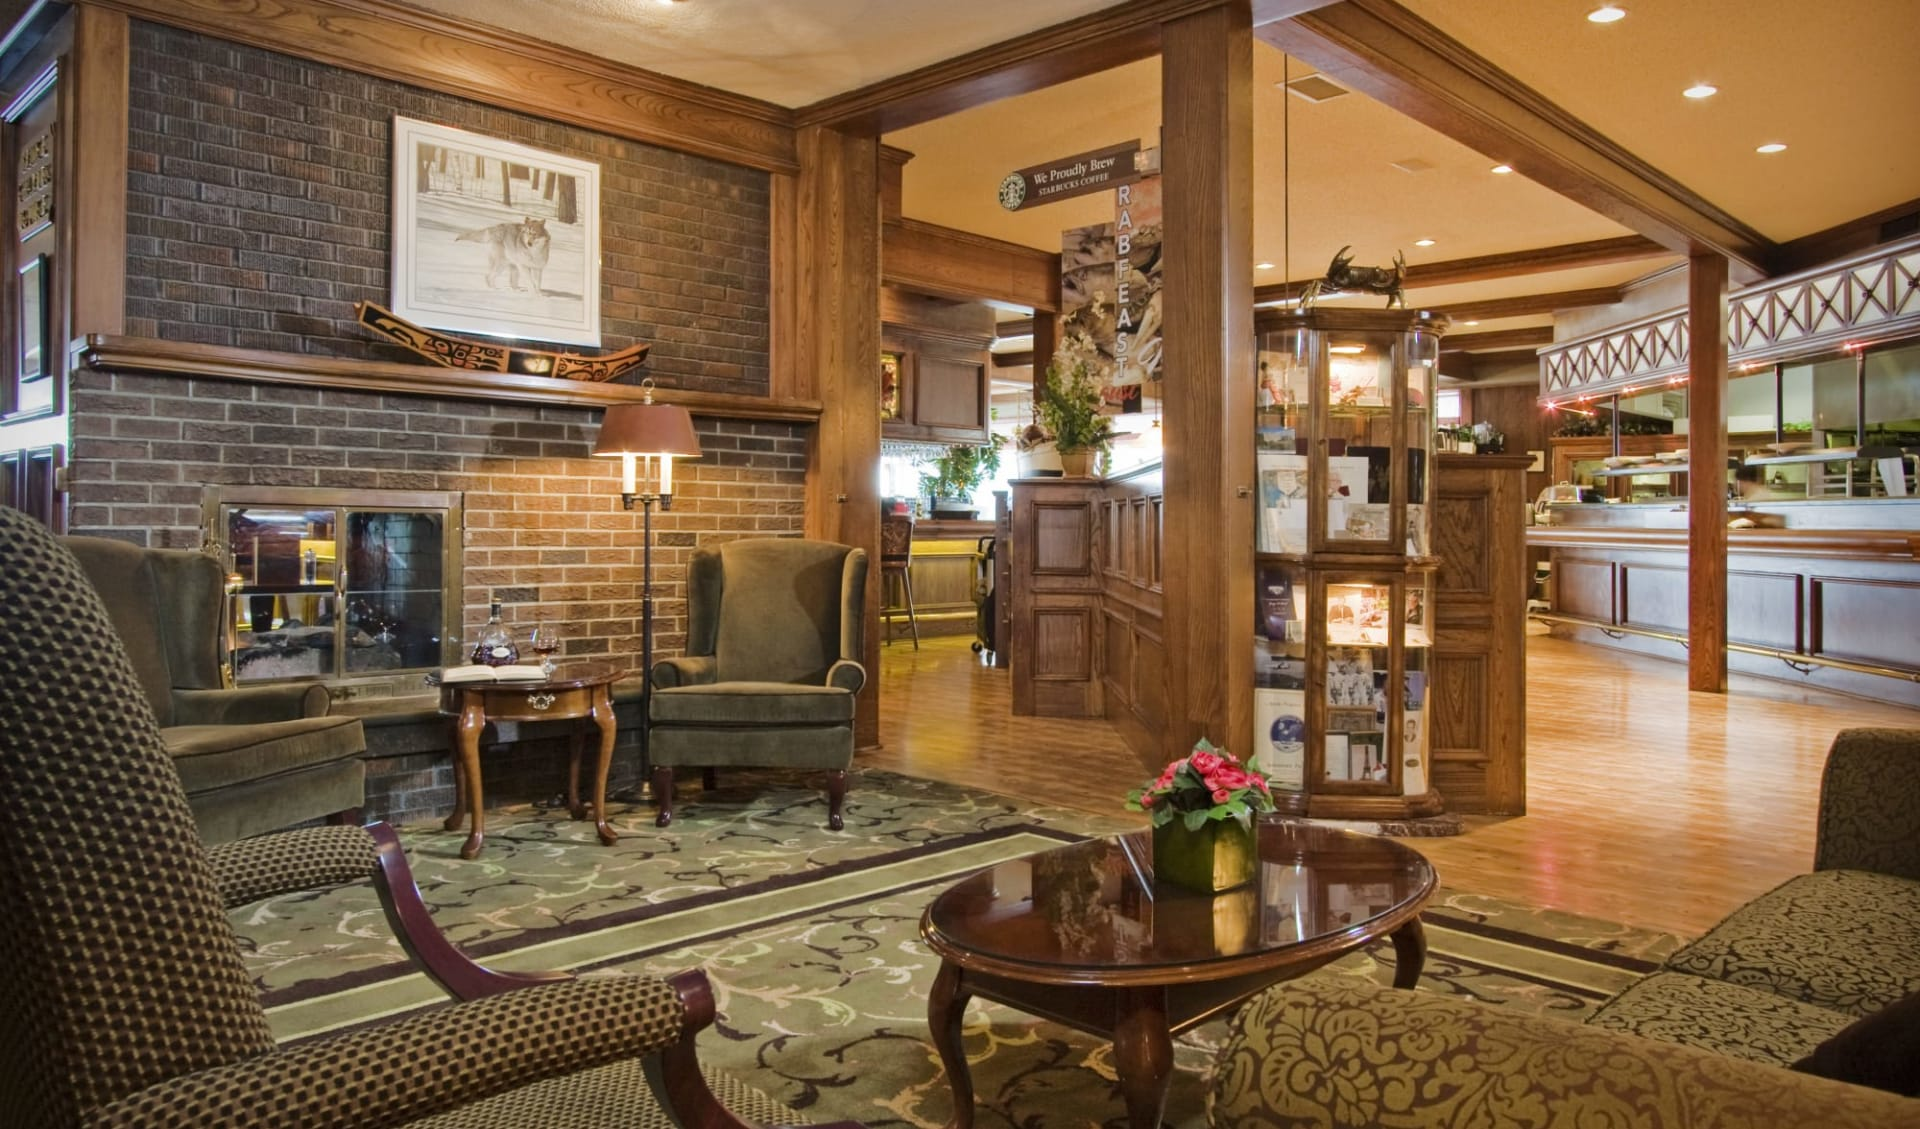 Crest Hotel in Prince Rupert:  Crest Hotel_Lobby